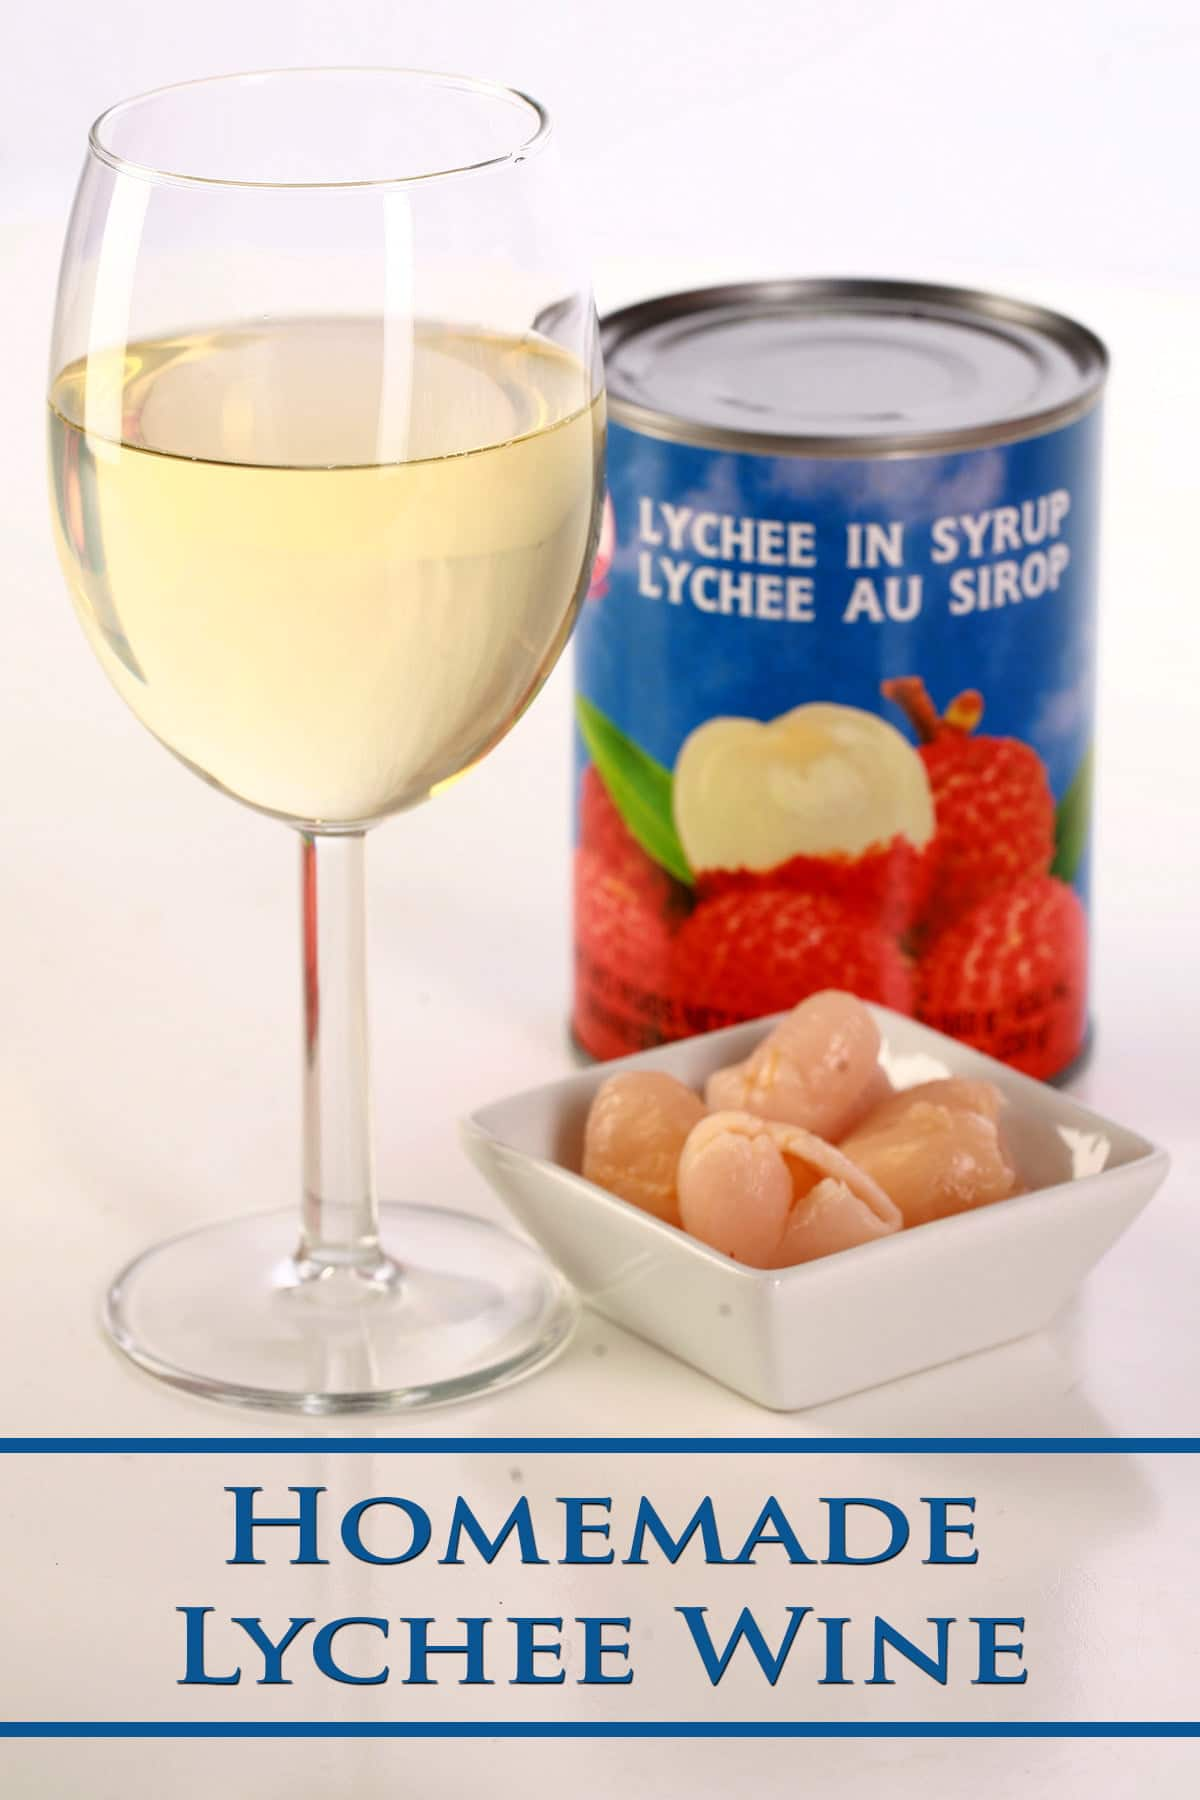 A glass of white wine is shown next to a small bowl of lychee fruit, and a can of lychees.